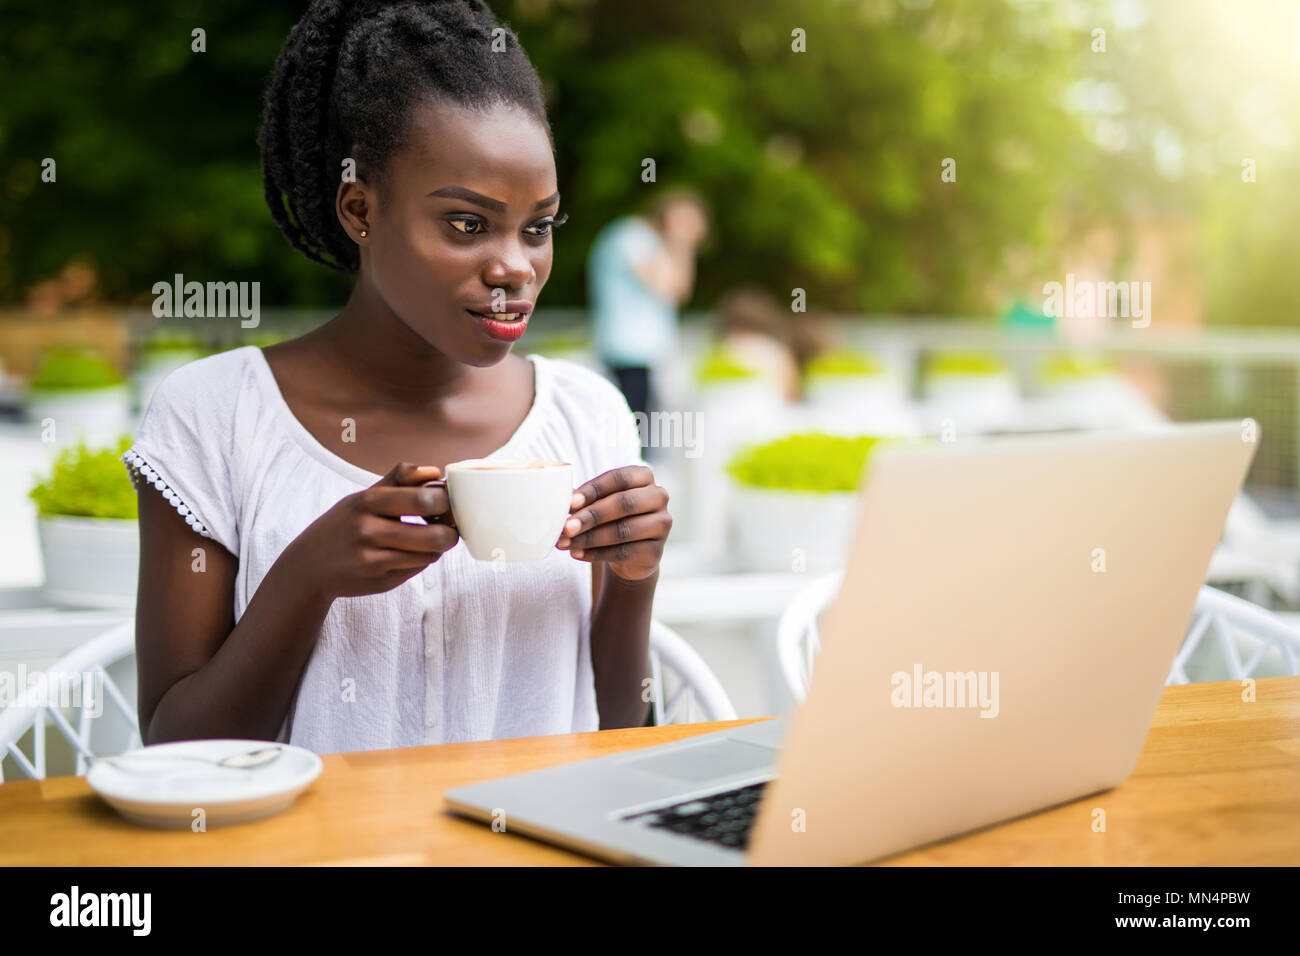 Charming African American woman entrepreneur is sitting at street restaurant and having remote online video session with colleagues using laptop, warm - Stock Image